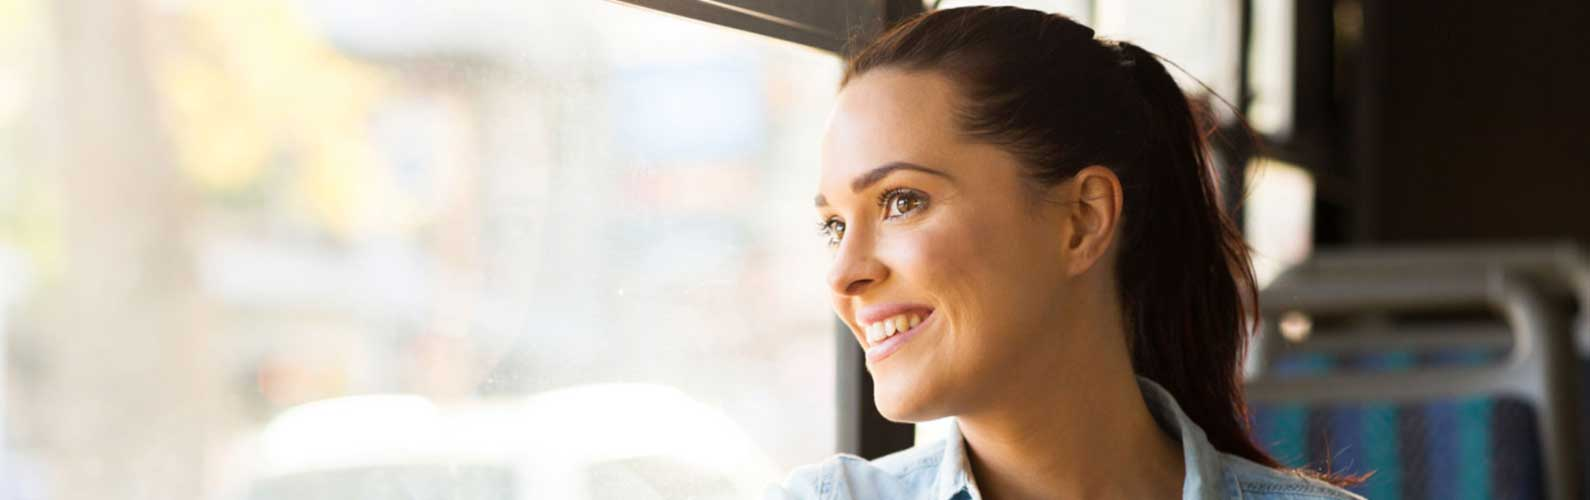 A woman smiles while riding the EC Rider Bus